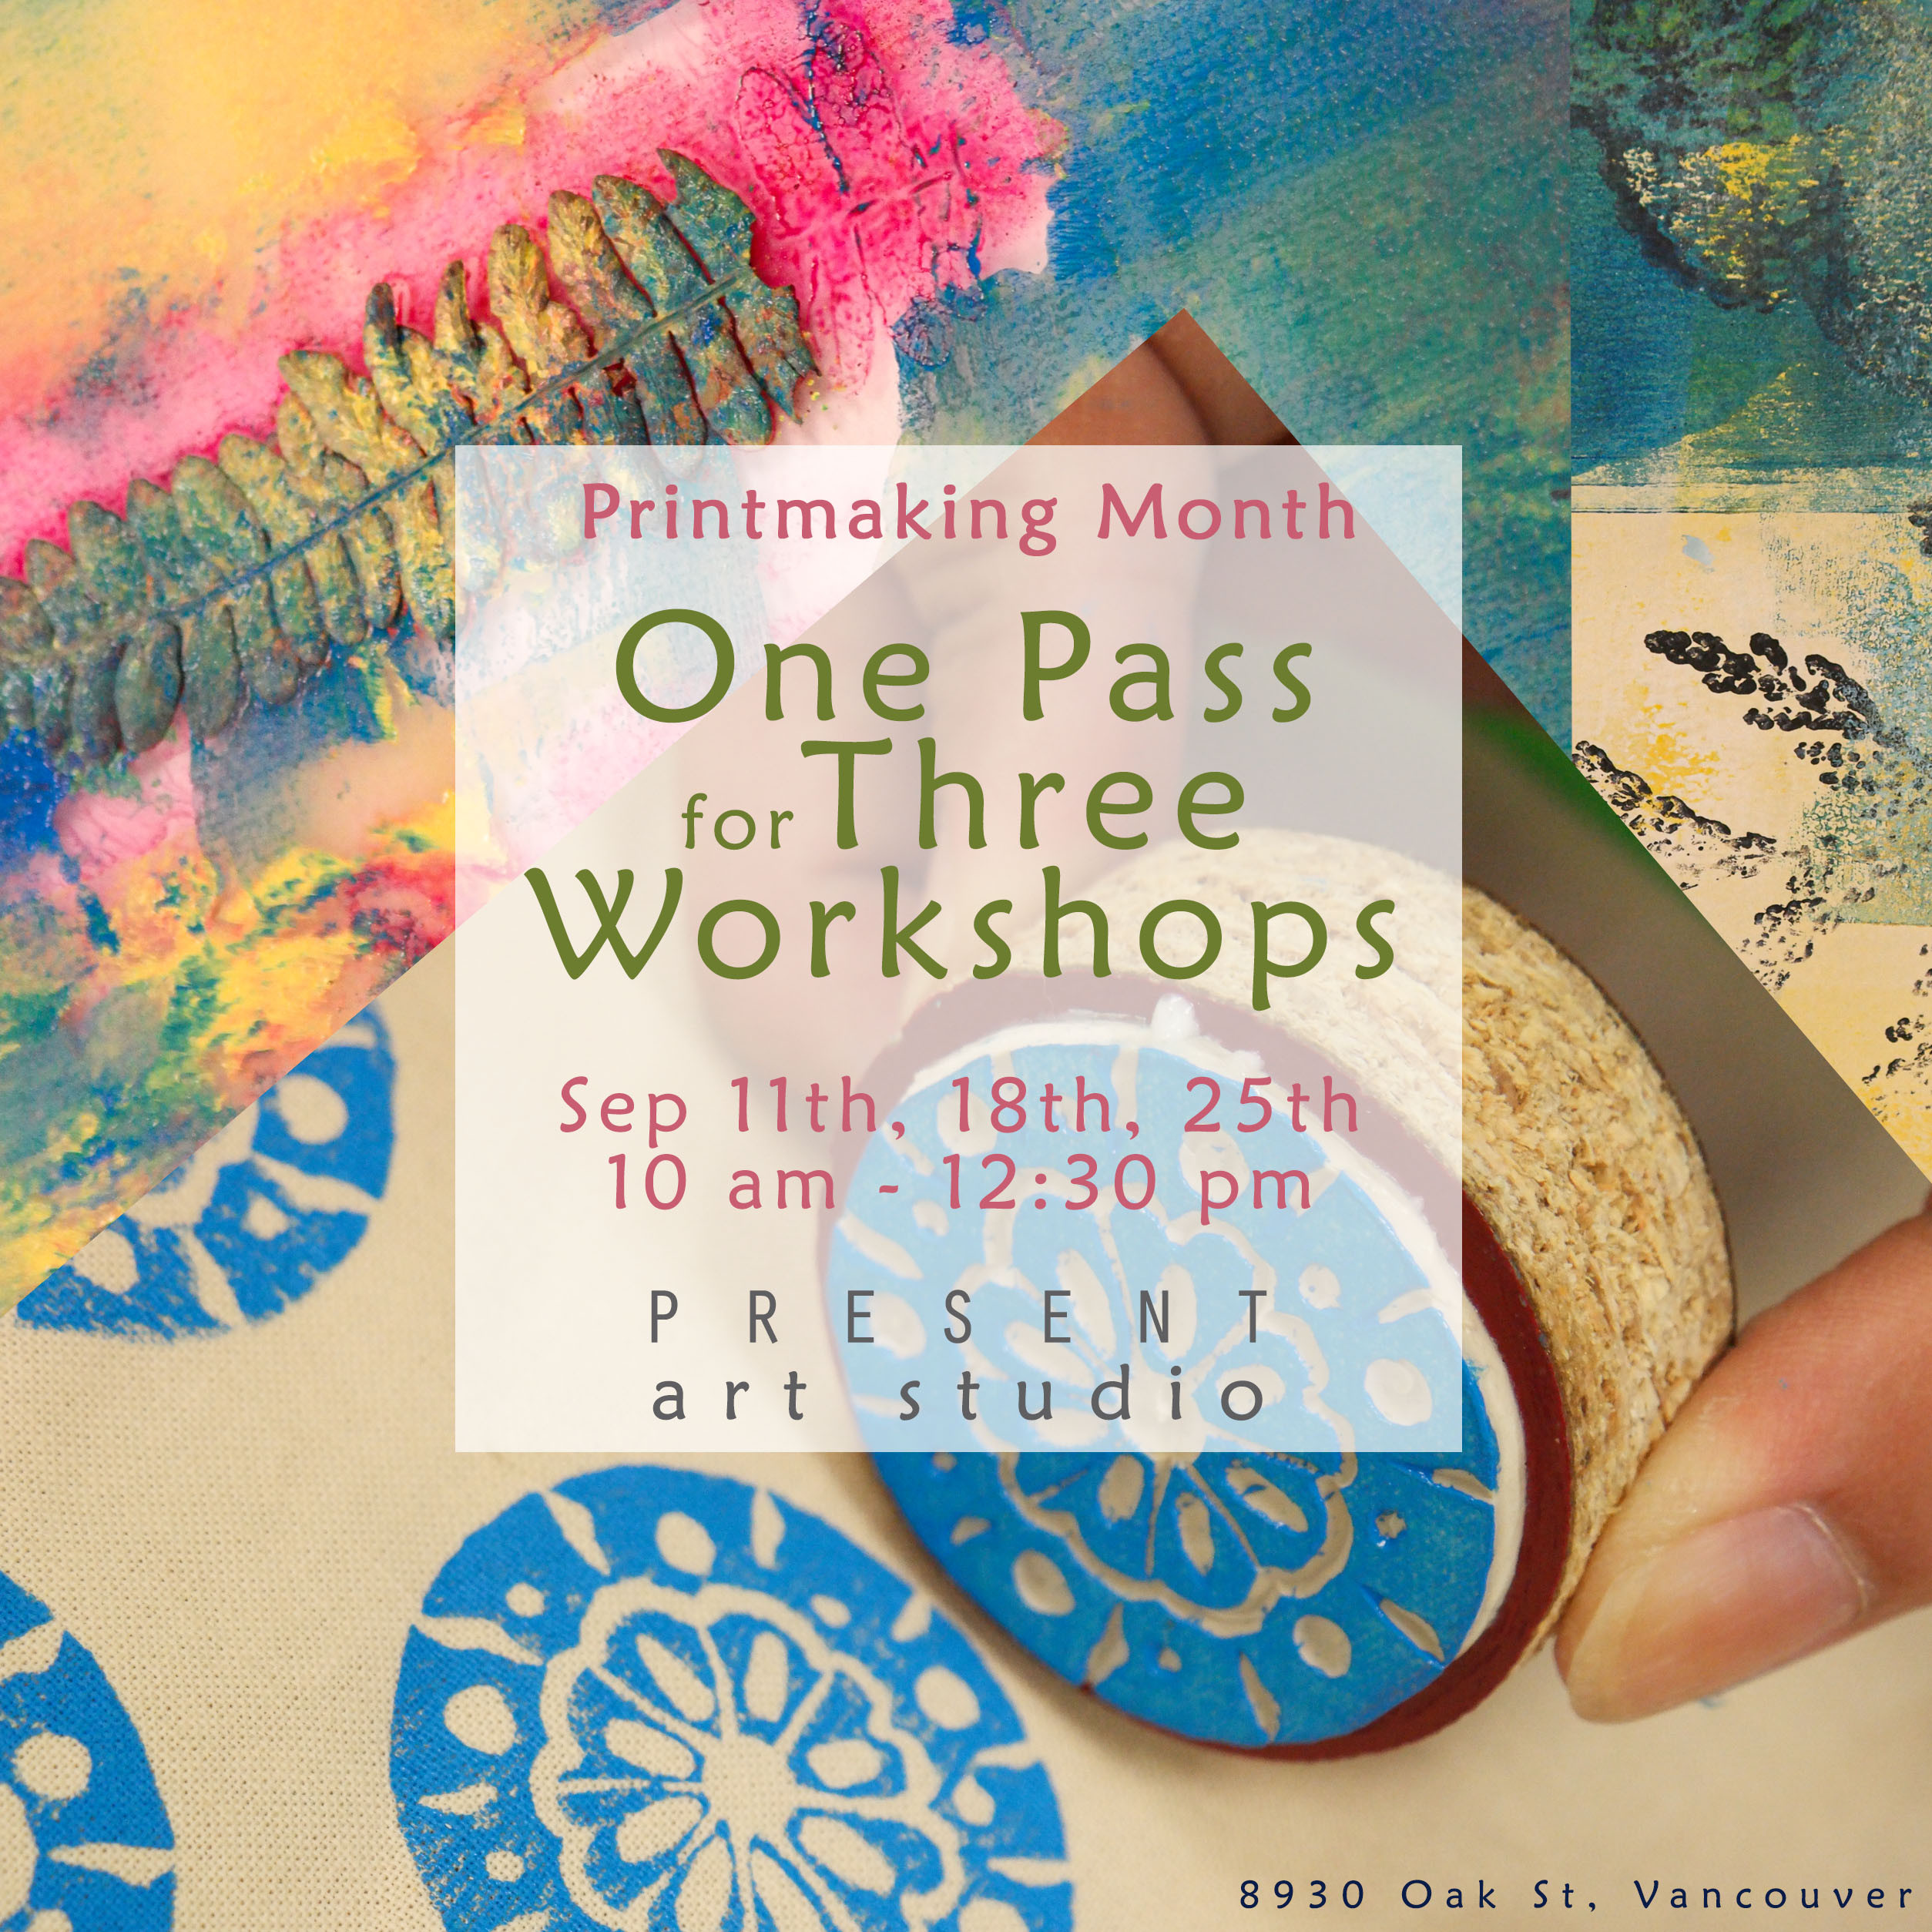 ONE pass for THREE workshops!